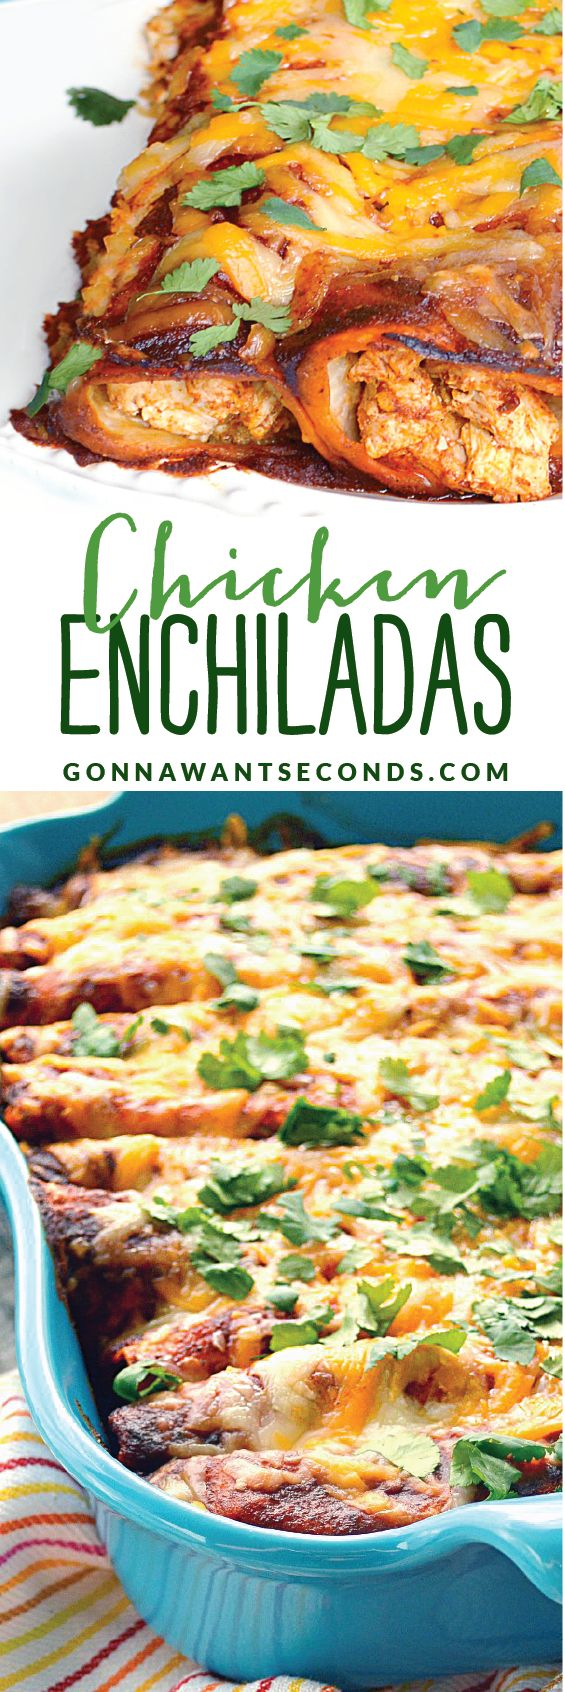 My FAVORITE Enchiladas! These Shredded Chicken Enchiladas are loaded with lots of chicken,  gooey cheese, sour cream and mild green chilies. Delicious and healthy~always a family favorite. Use a rotisserie chicken and dinners a snap!